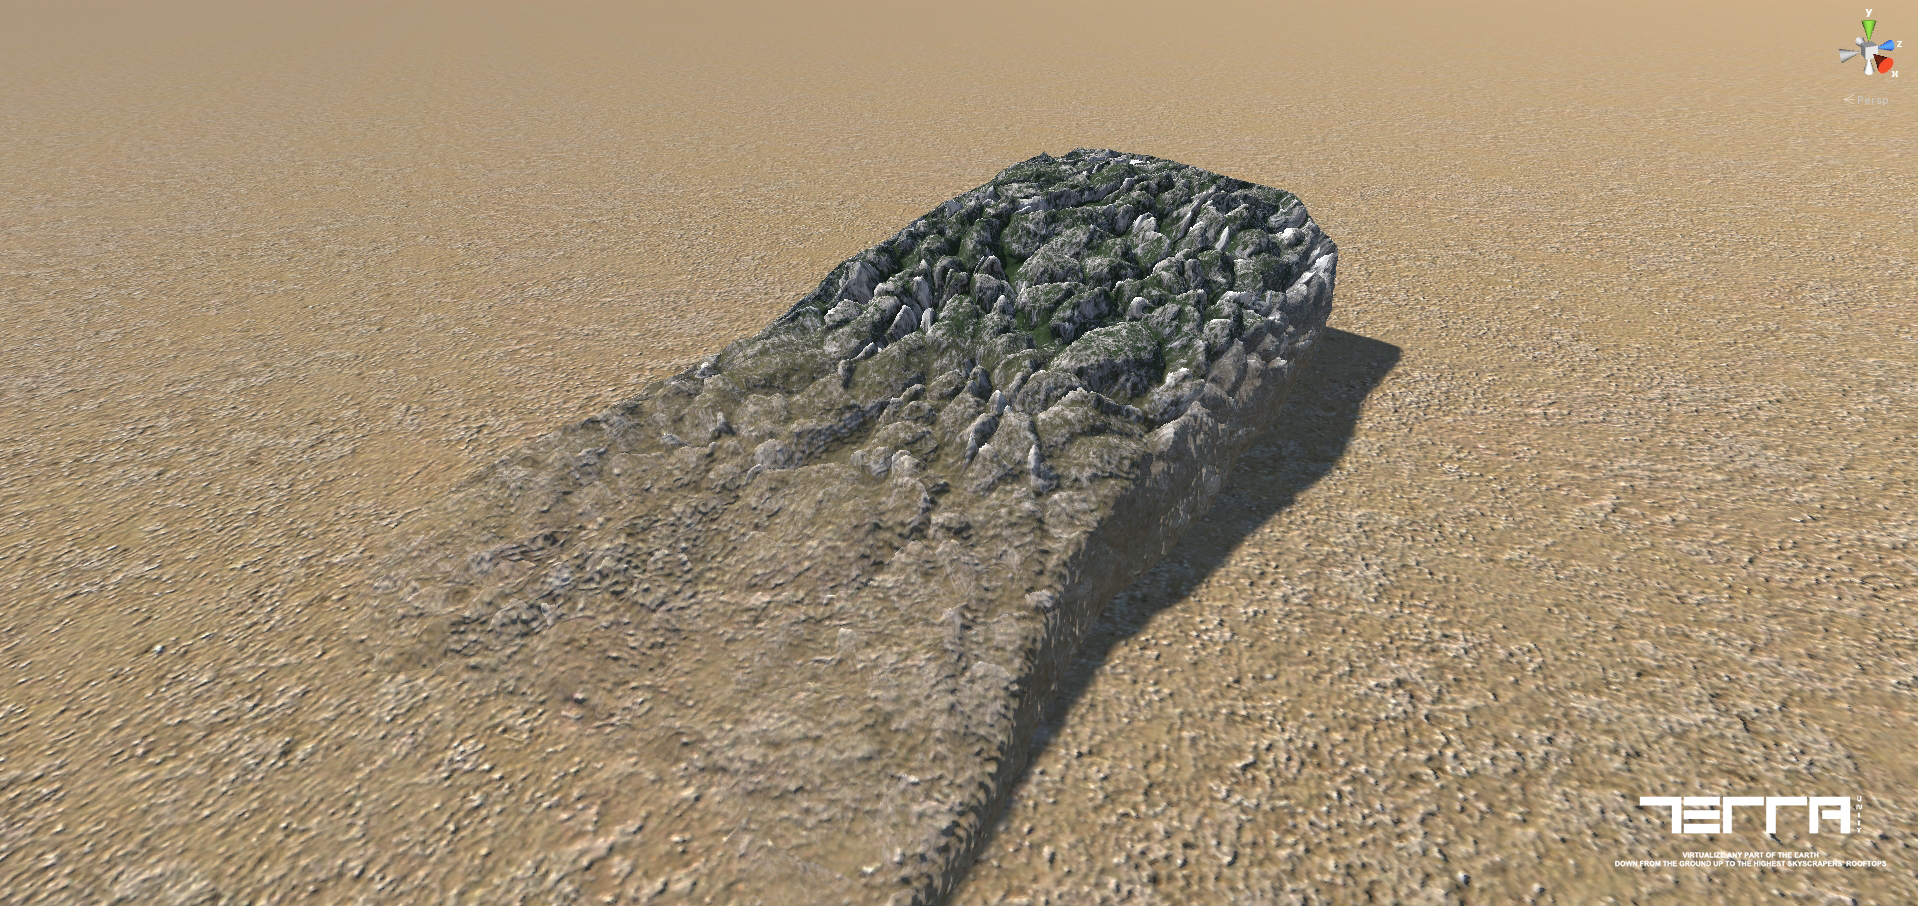 TerraWorld_SteepParallax_GeomBlended_ProceduralMoss.jpg